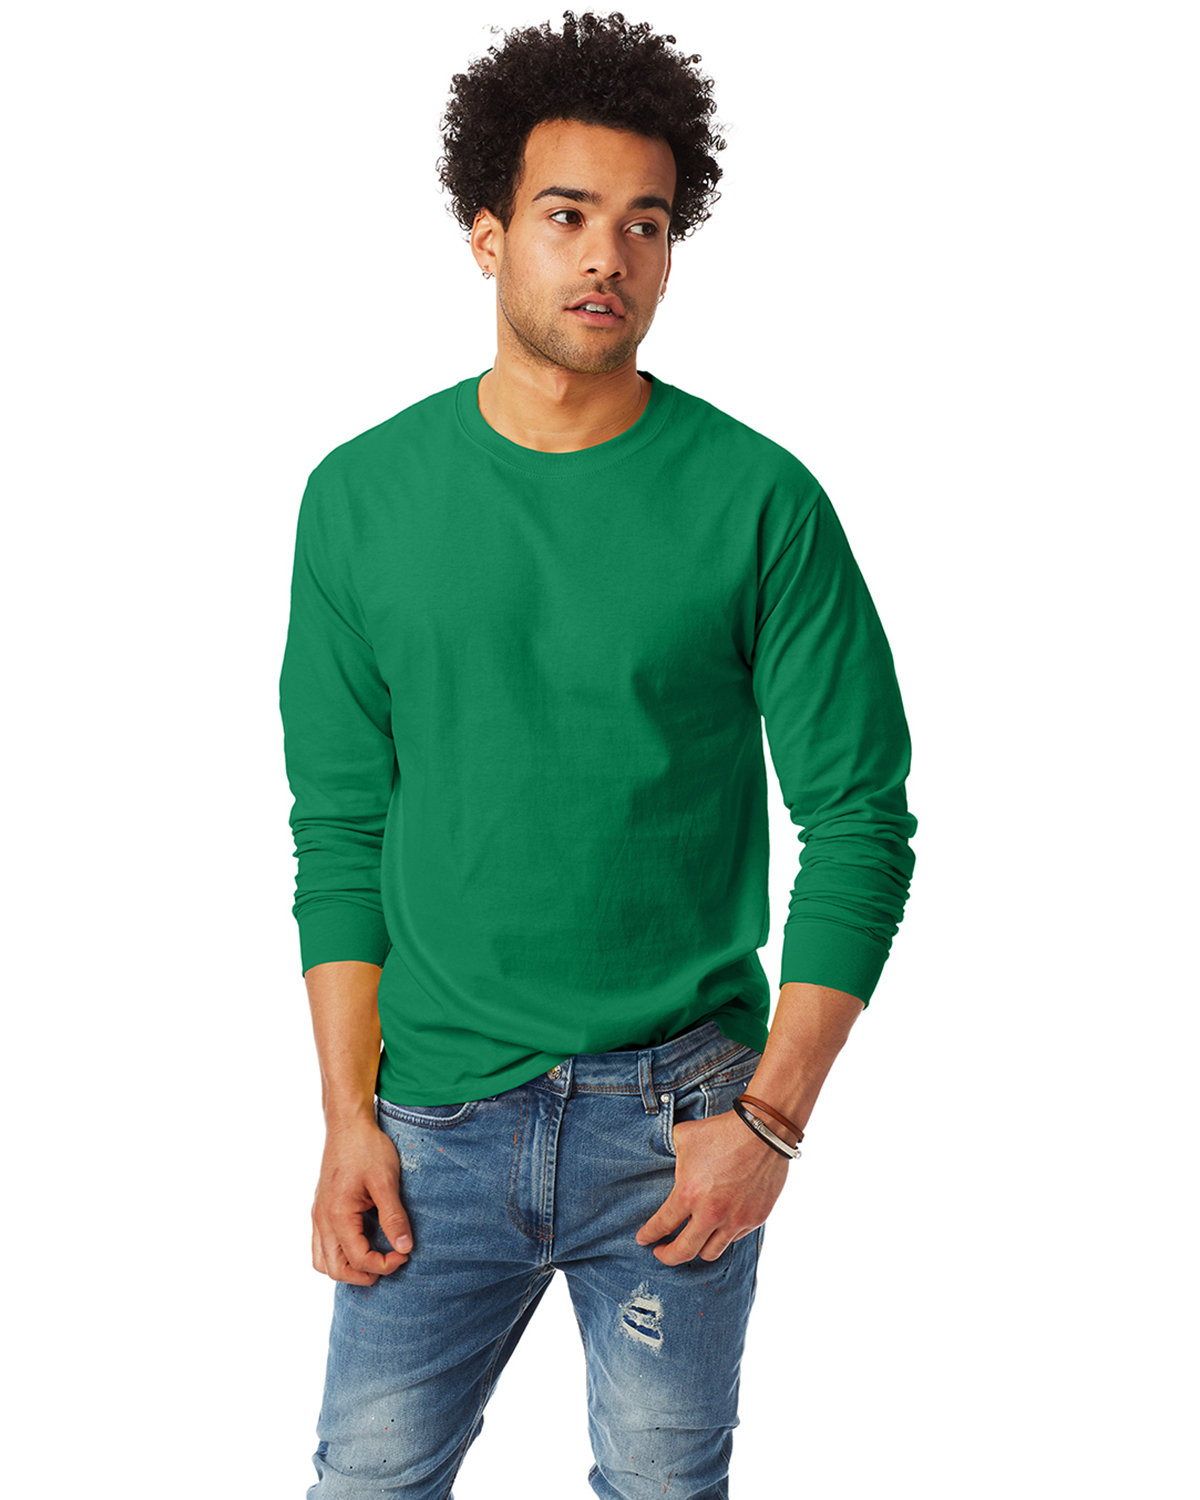 Hanes Adult Authentic-T Long-Sleeve T-Shirt KELLY